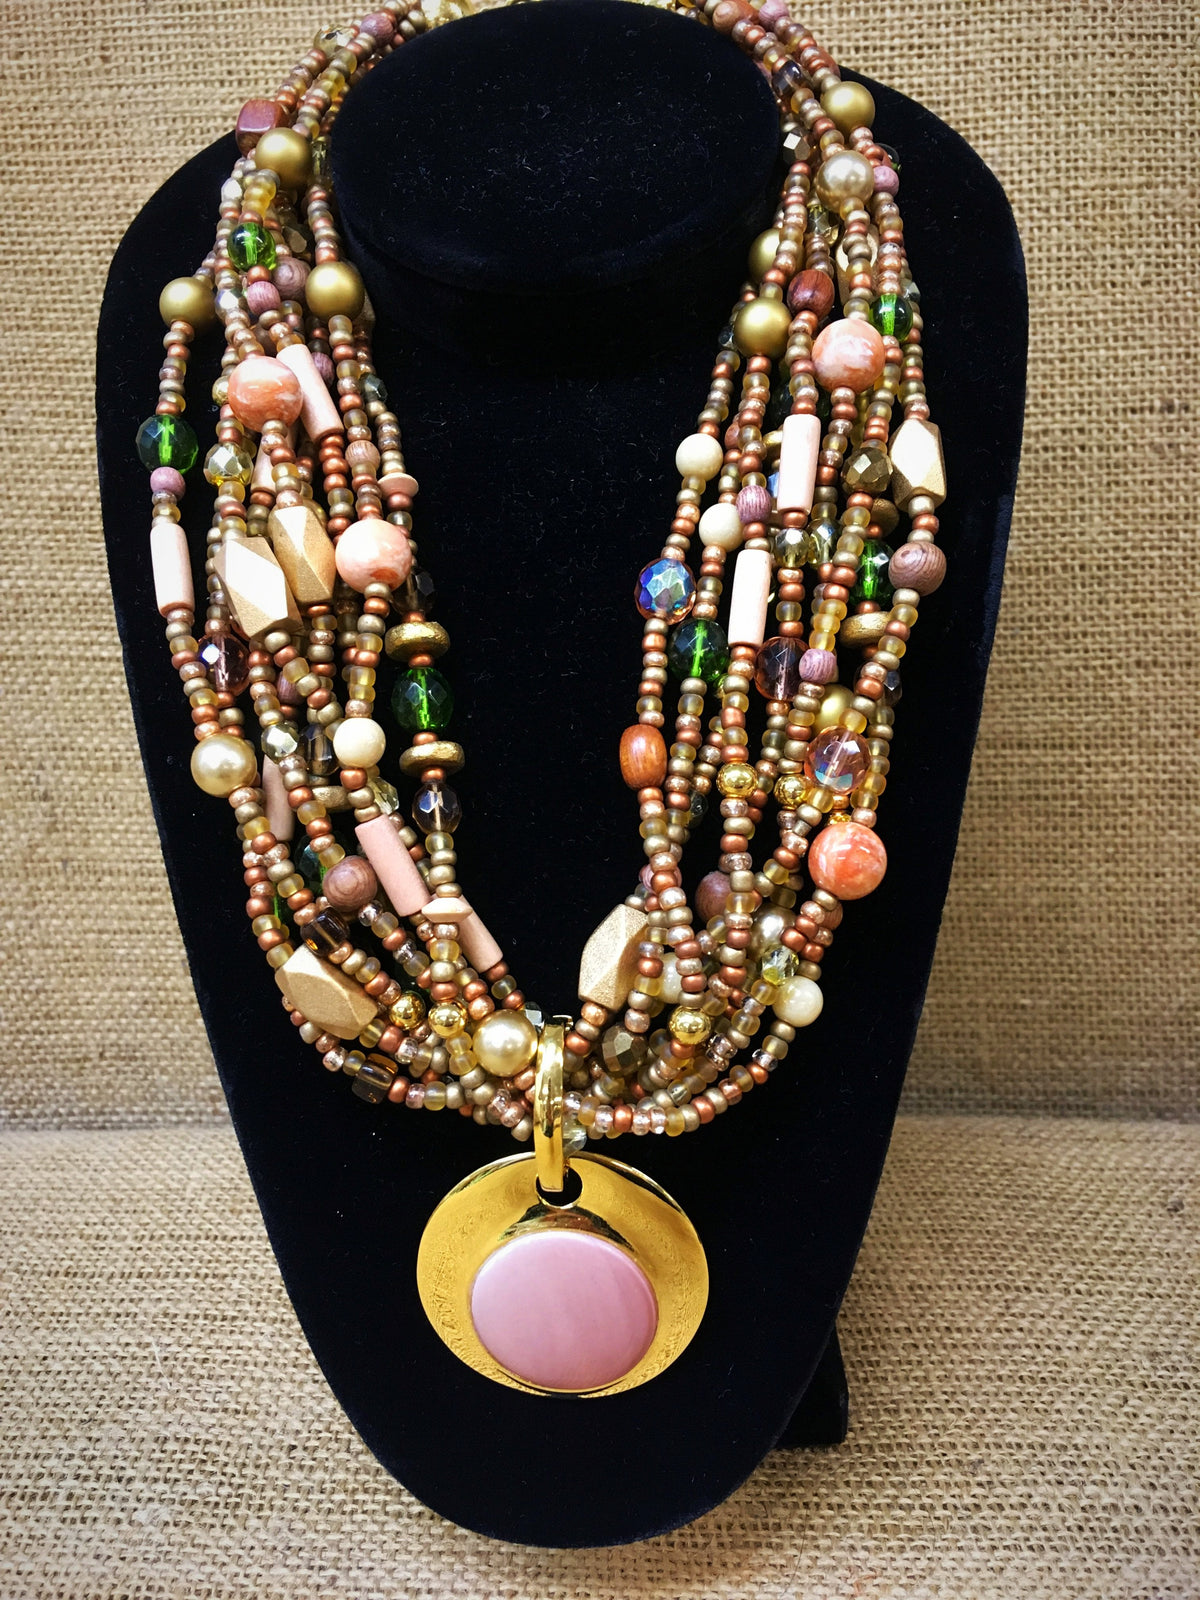 Joan Rivers Multi-Strand Beaded Necklace with Pendant